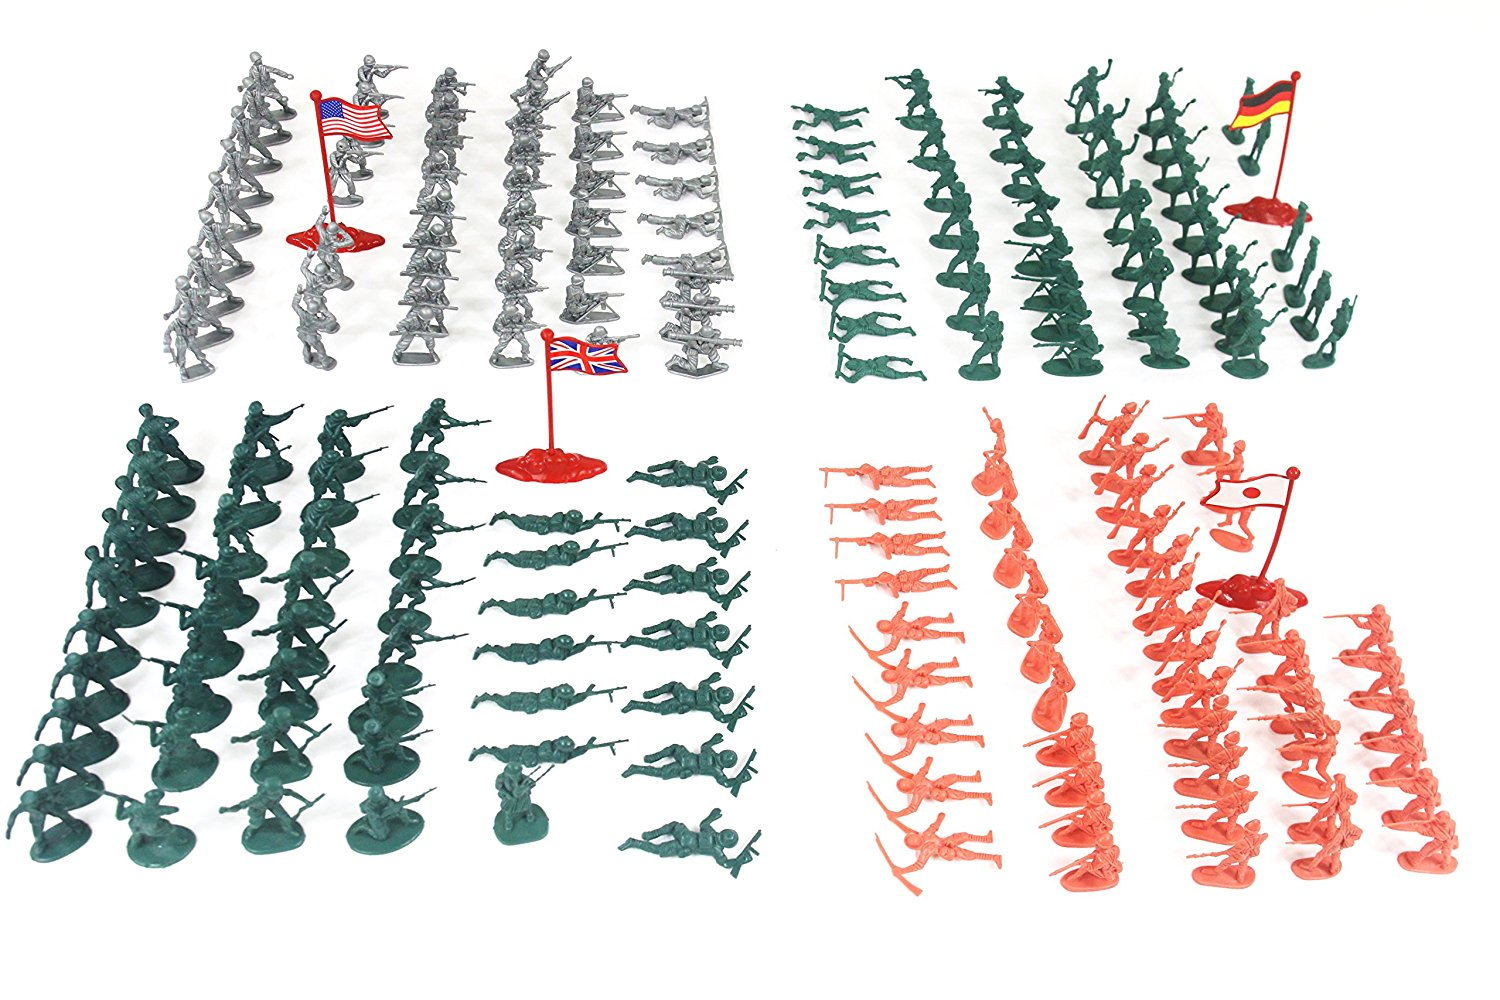 Fun Little Toys Army Military Soldiers WW2 Combat Plastic Special Forces 200 Pc